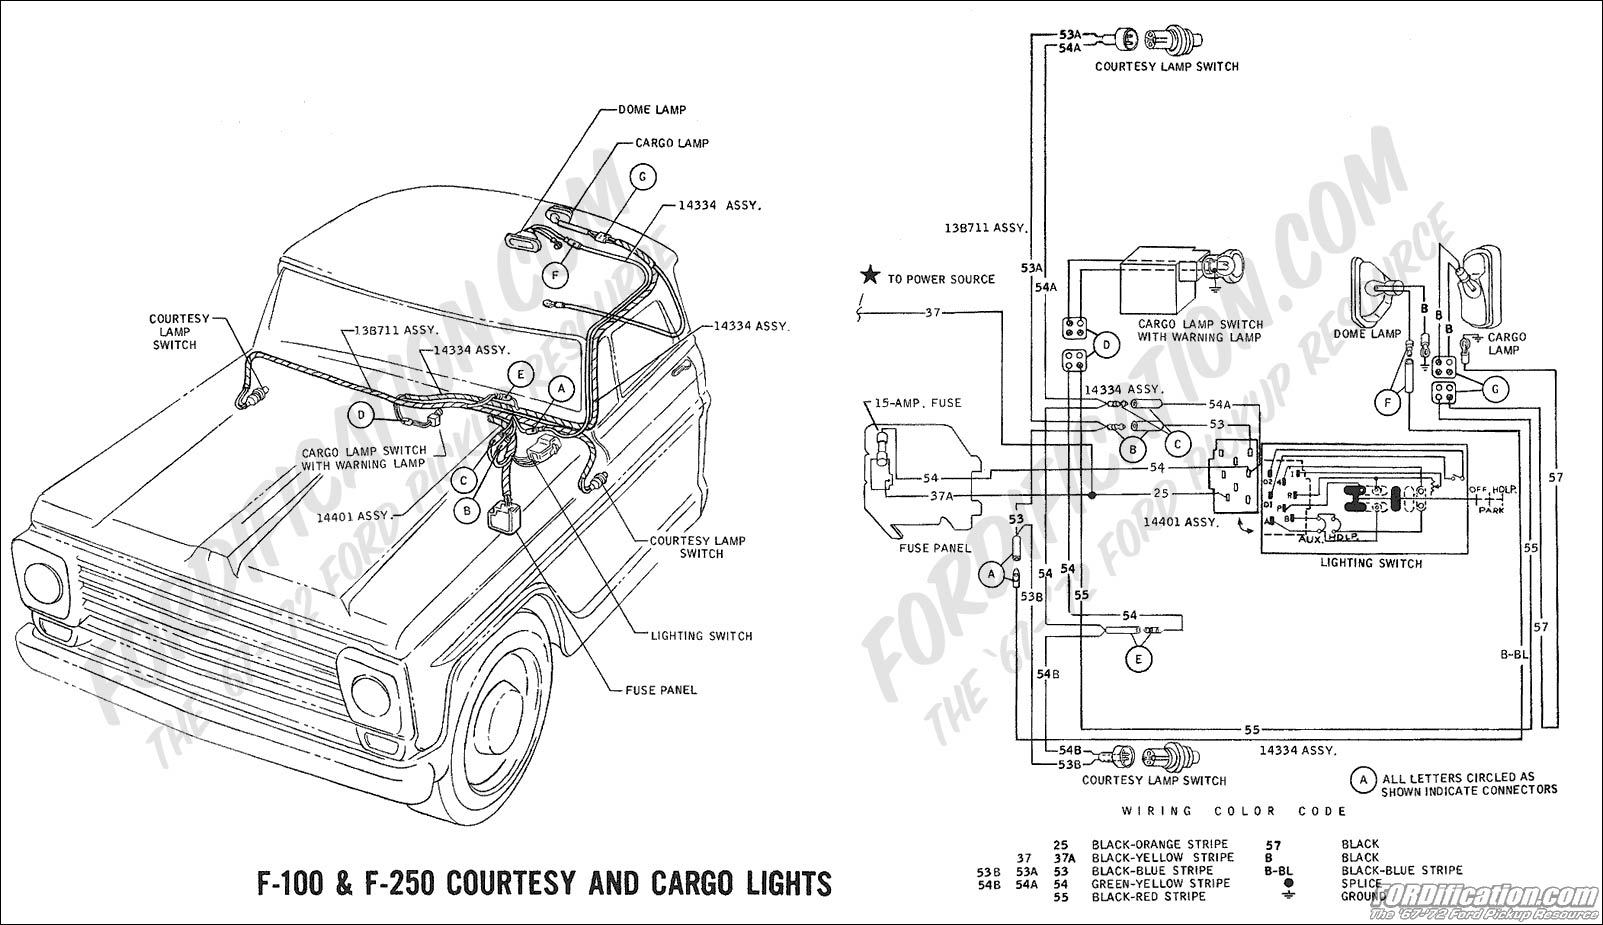 1956 Ford Truck Wiring Diagrams List Of Schematic Circuit Diagram Car 1972 F100 Schematics Data Schema Rh Site De Joueurs Com Headlight Switch